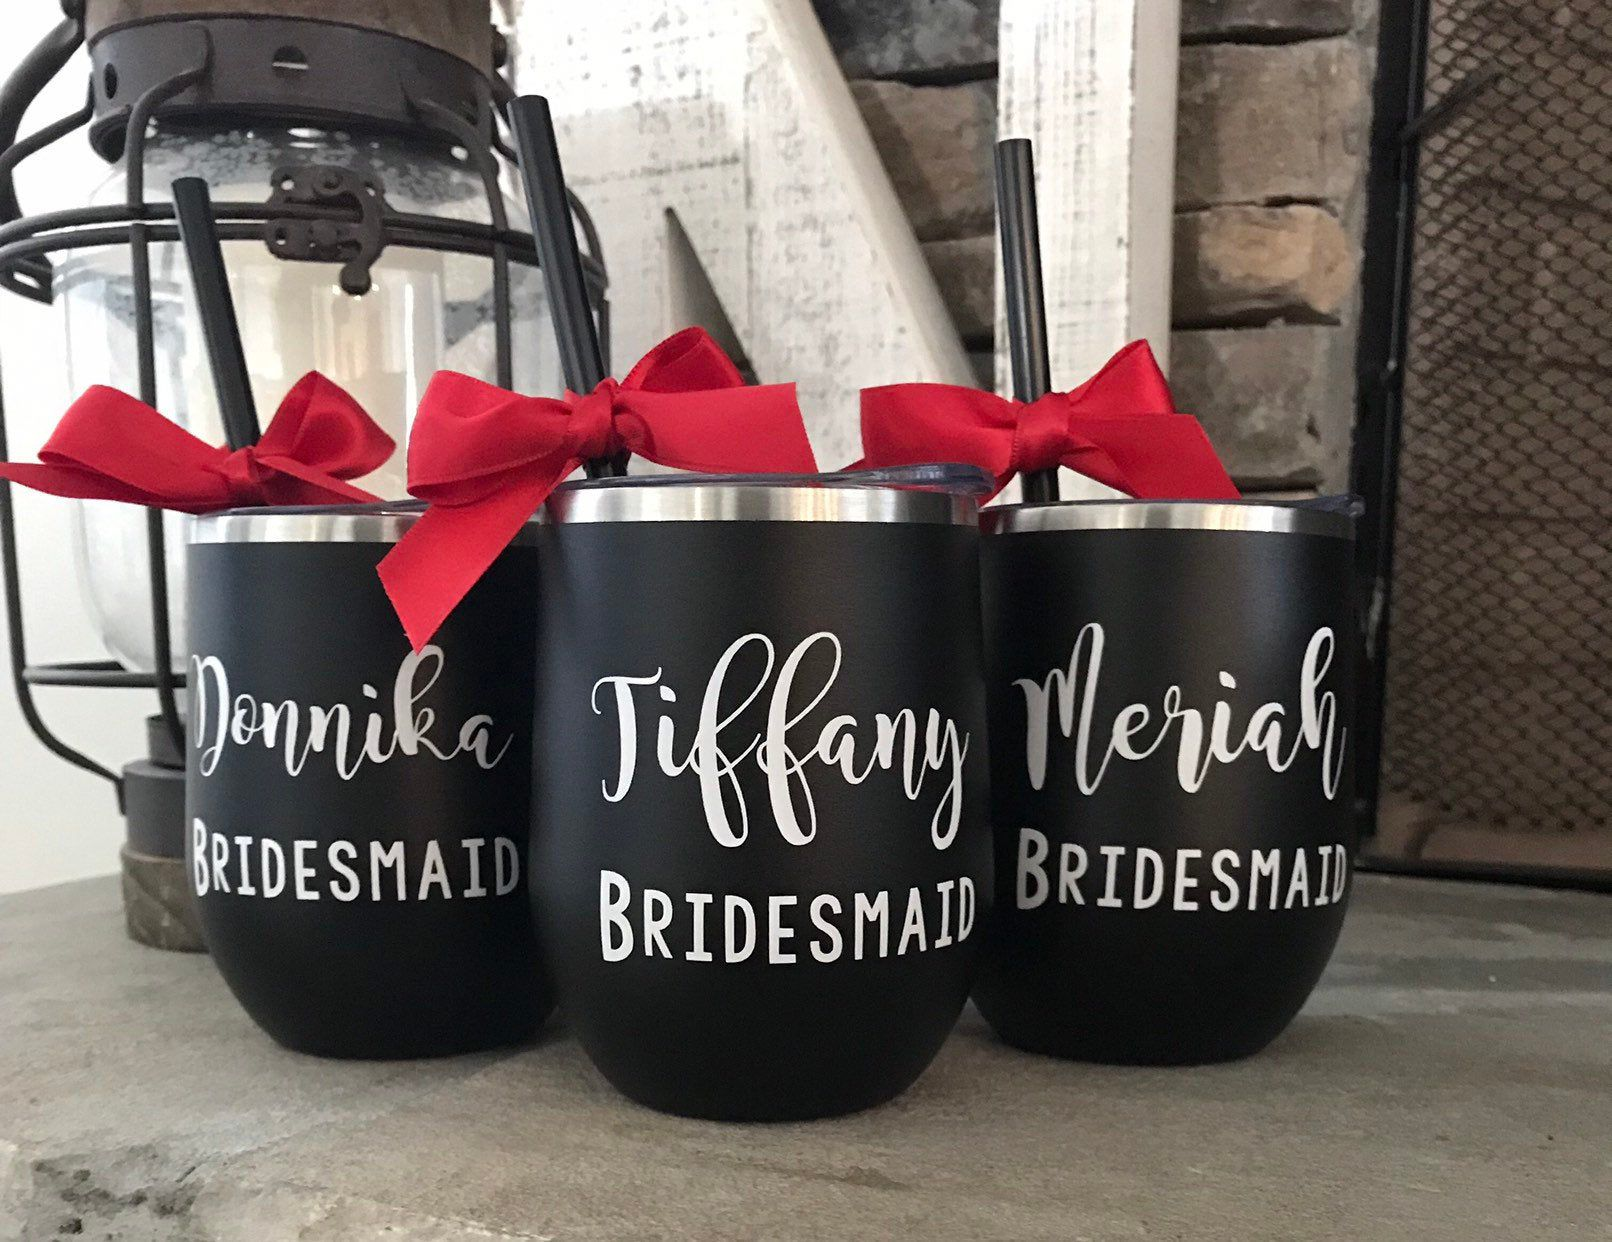 Personalized Cups For Bridesmaids Stainless Wine Tumblers Etsy In 2020 Bridesmaid Proposal Personalized Bridesmaid Gifts Bridesmaid Proposal Gifts